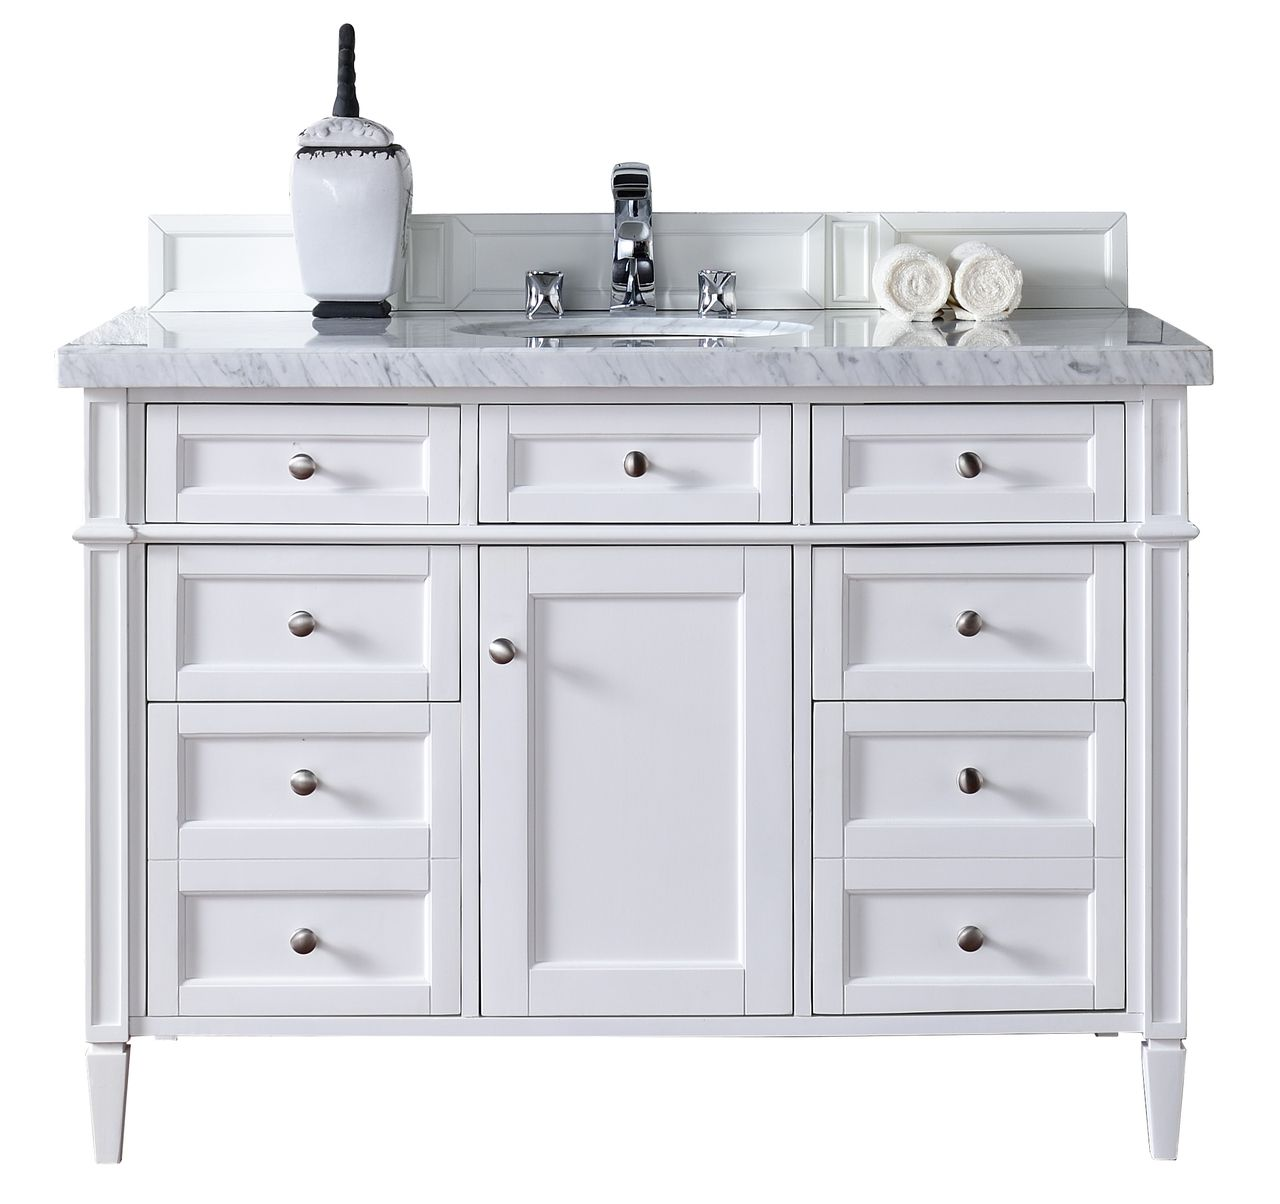 single white bathroom vanities. Picture For Bathrooms Decorations With Brittany Single Cottage White Bathroom Vanity Set - Home Create Idea Vanities D